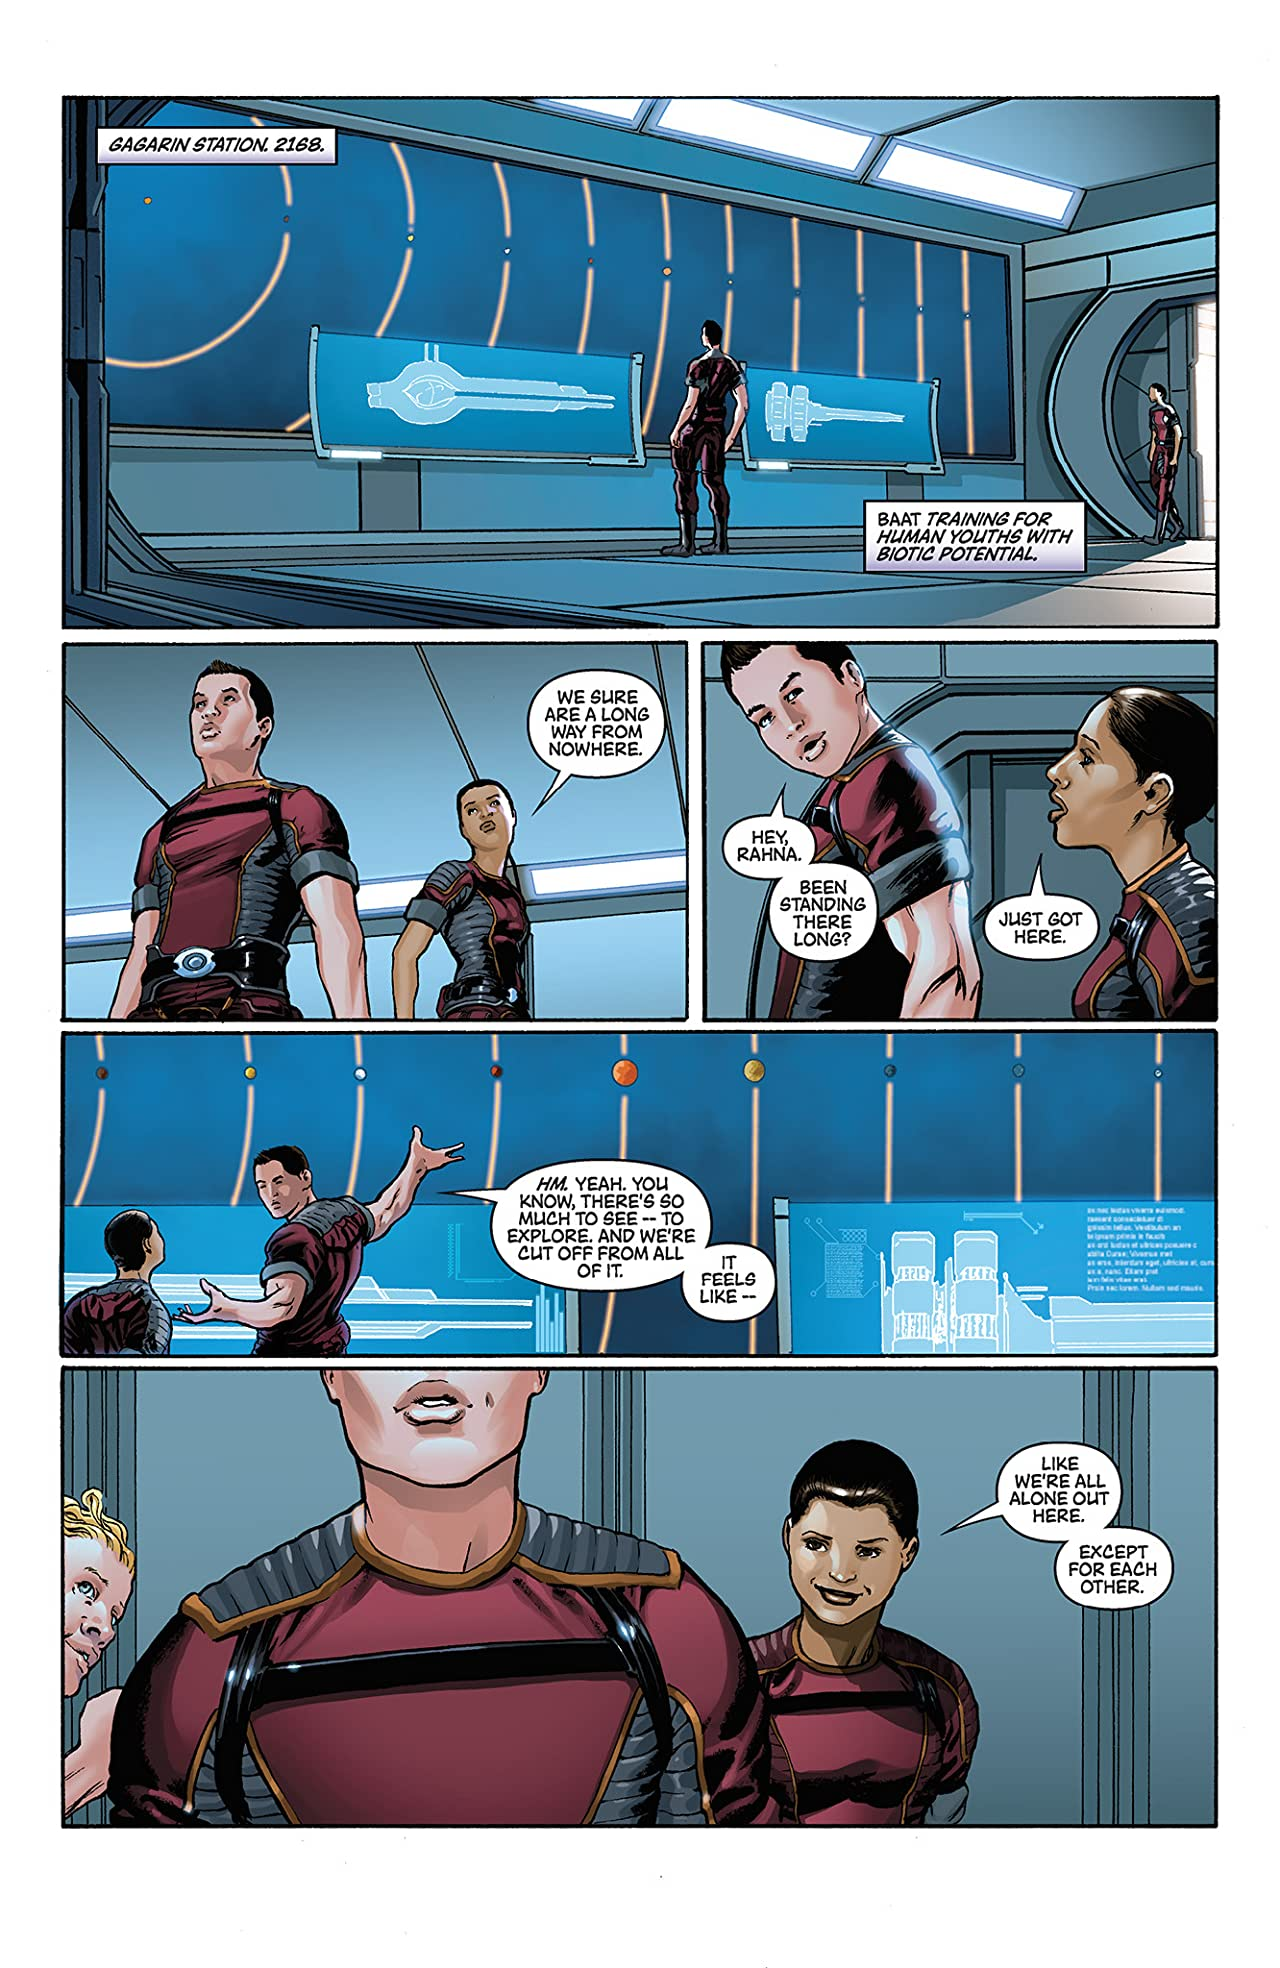 Mass Effect: Foundation #4